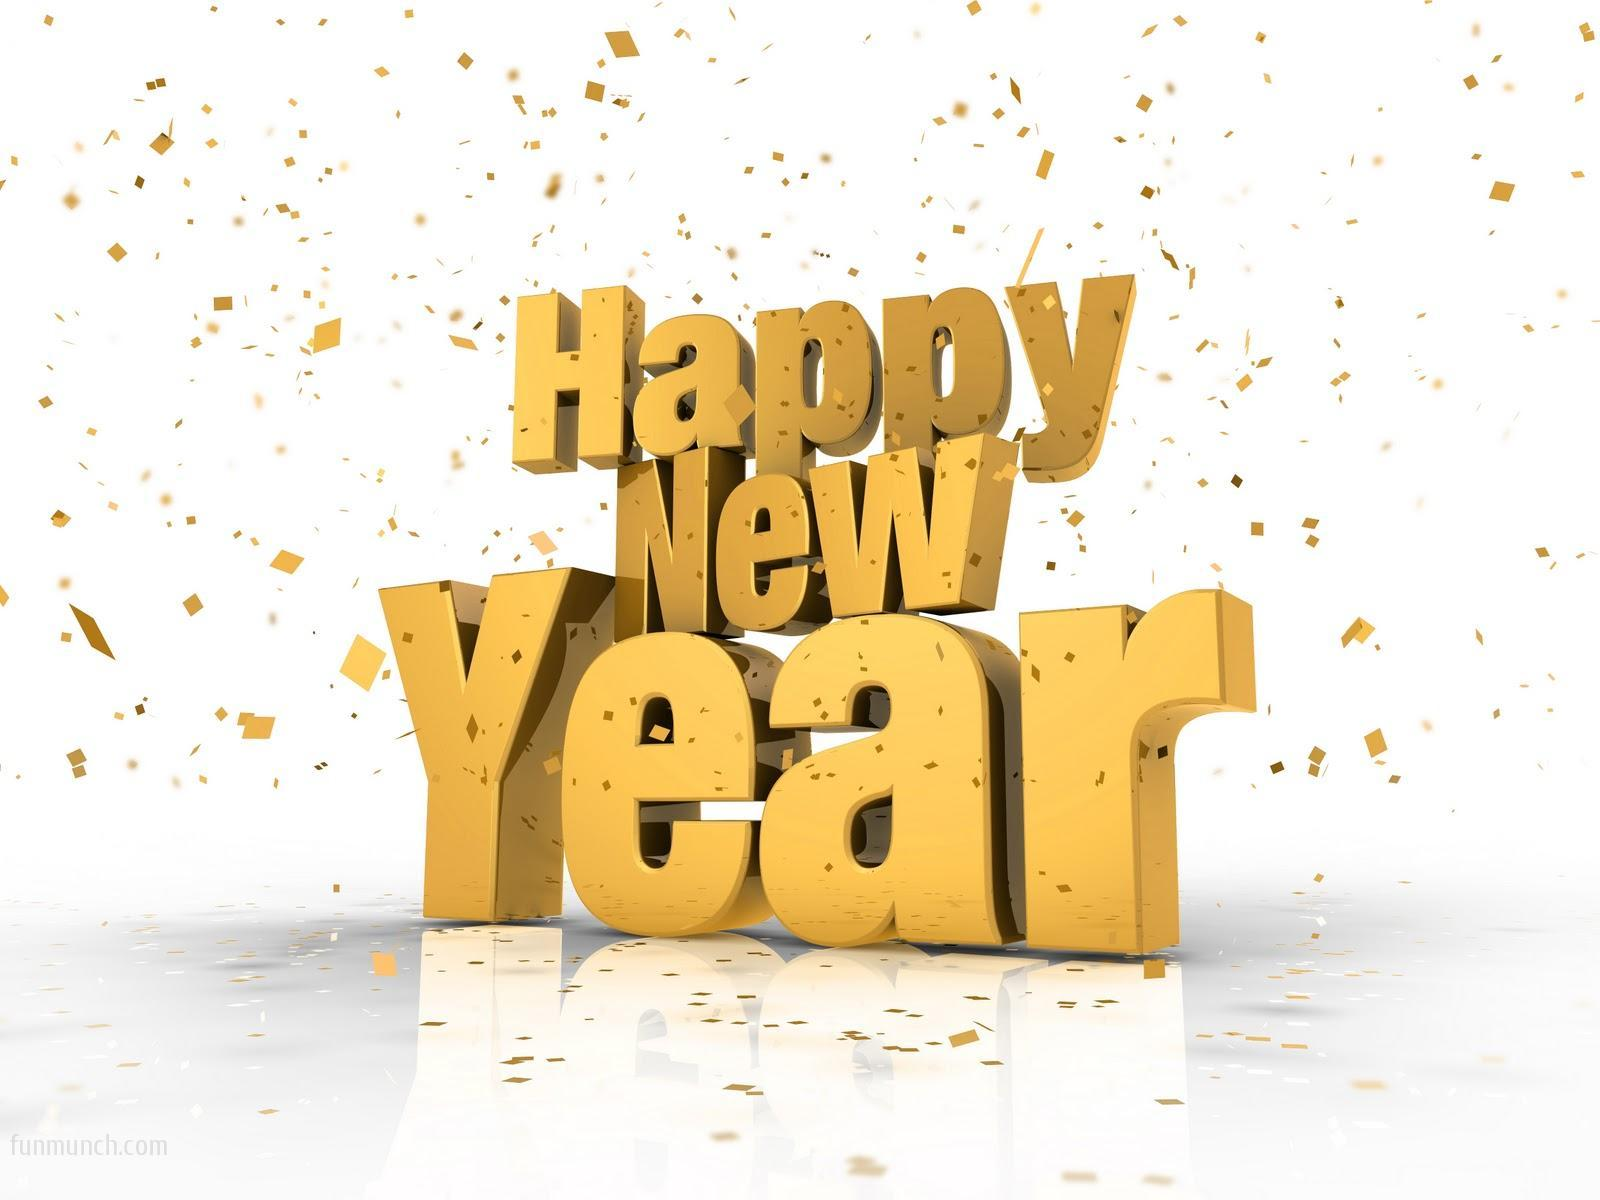 Happy new year 2020 wallpapers download